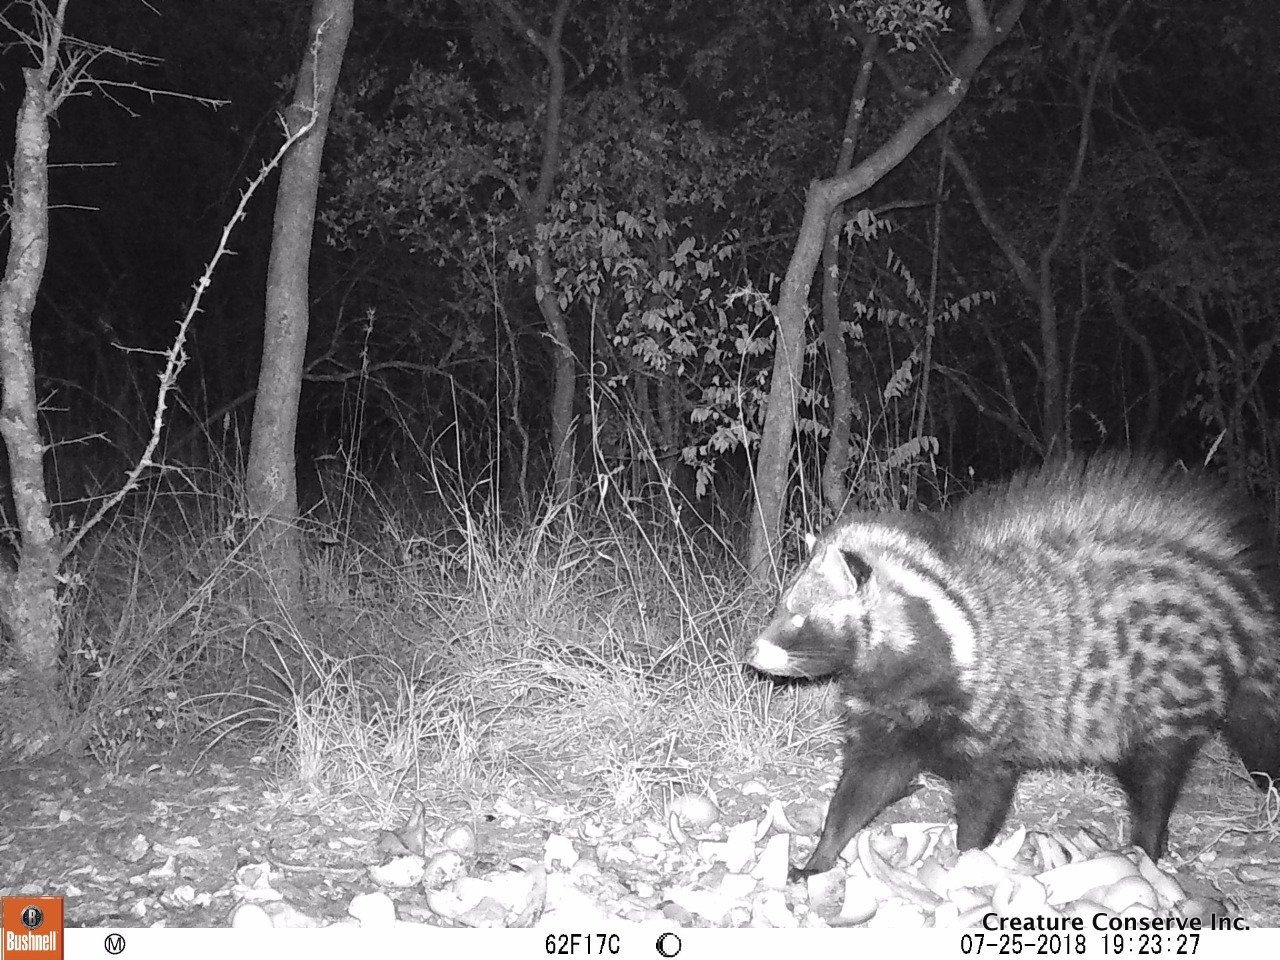 Civet-2018-07-01-05-20-43 Nov 30, 2018 at 5-39 PM.jpg